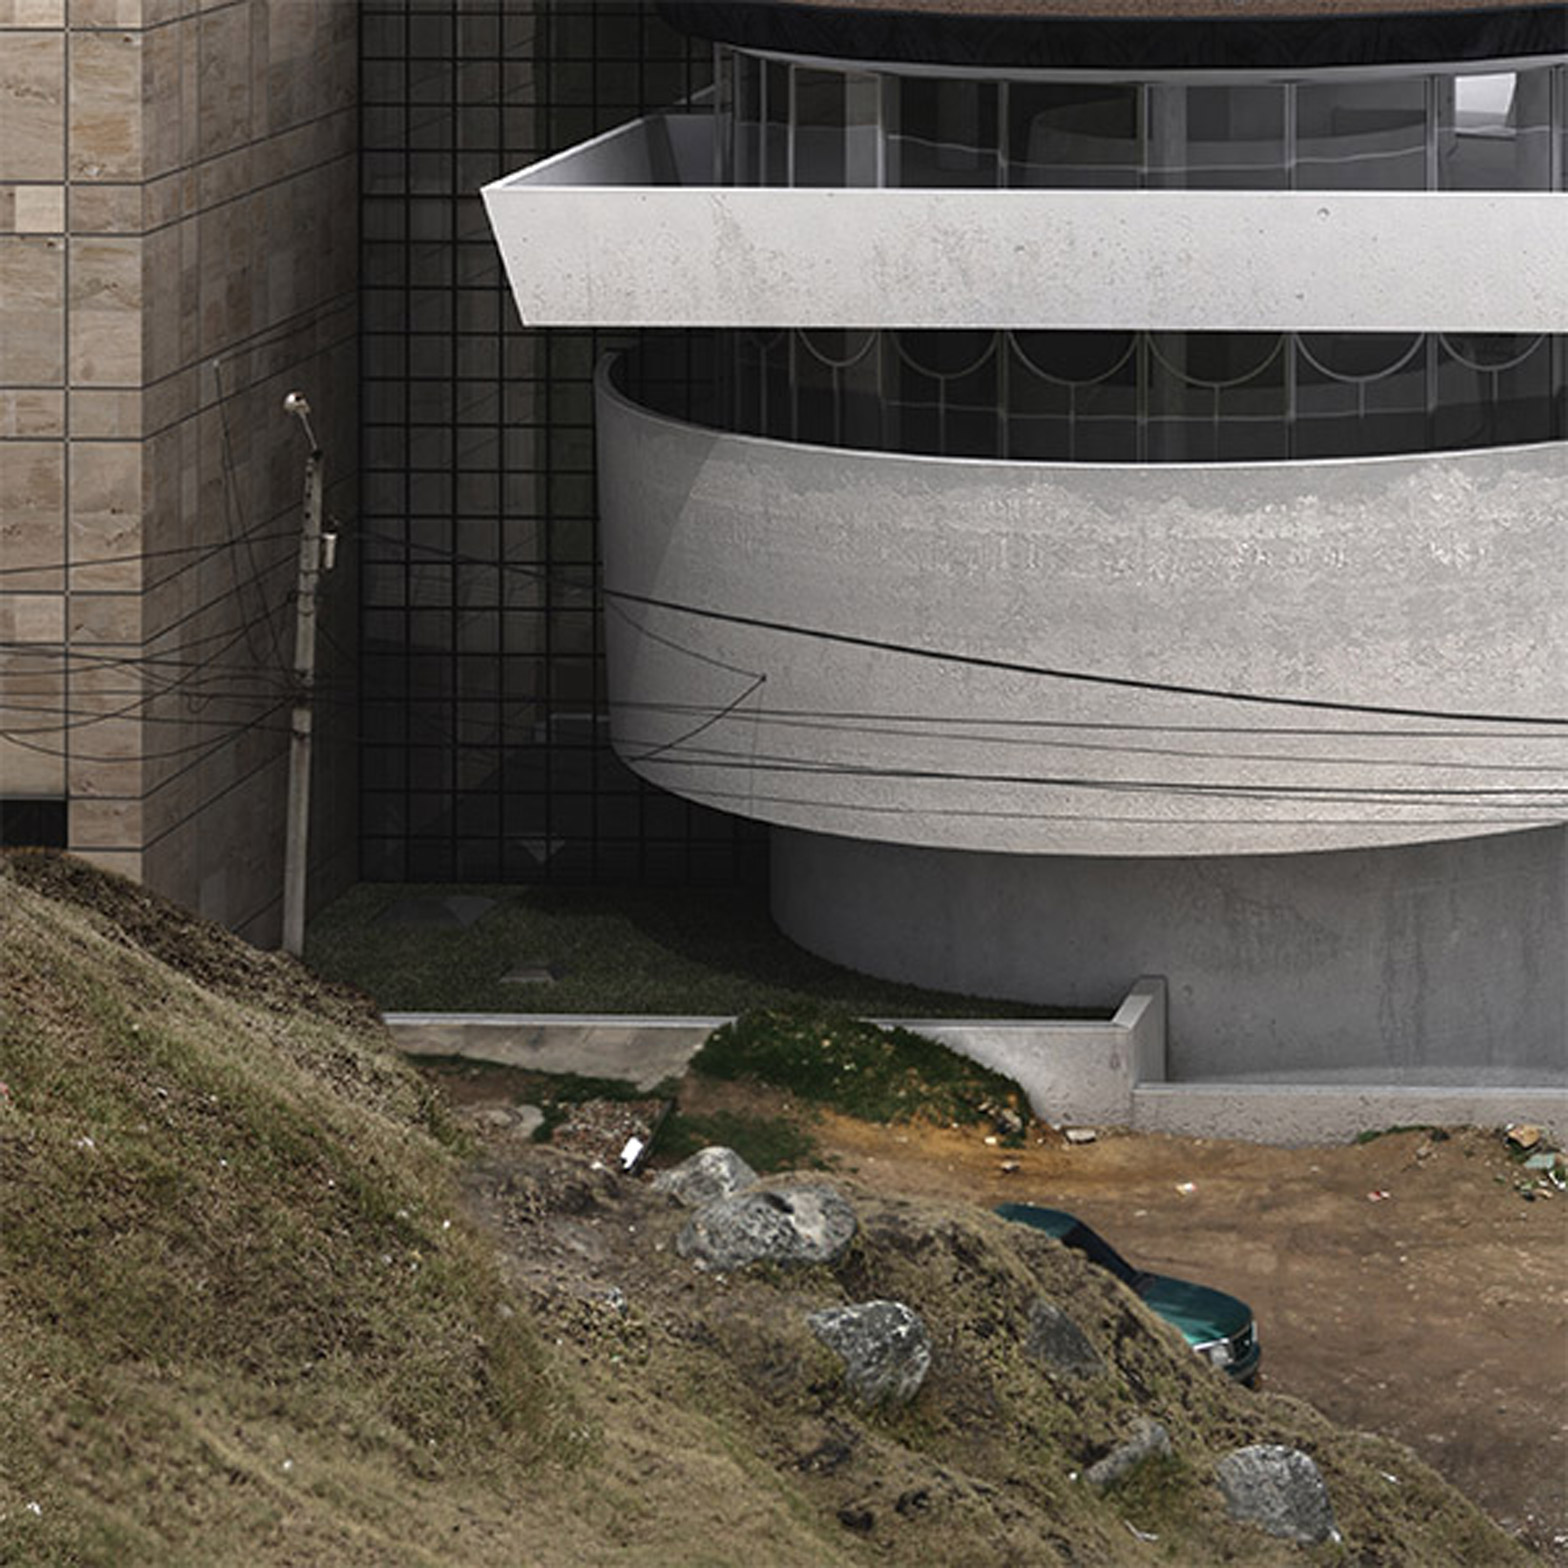 rafael uribe uribe existe Guggenheim photography project by Victor Enrich in Bogotá Colombia